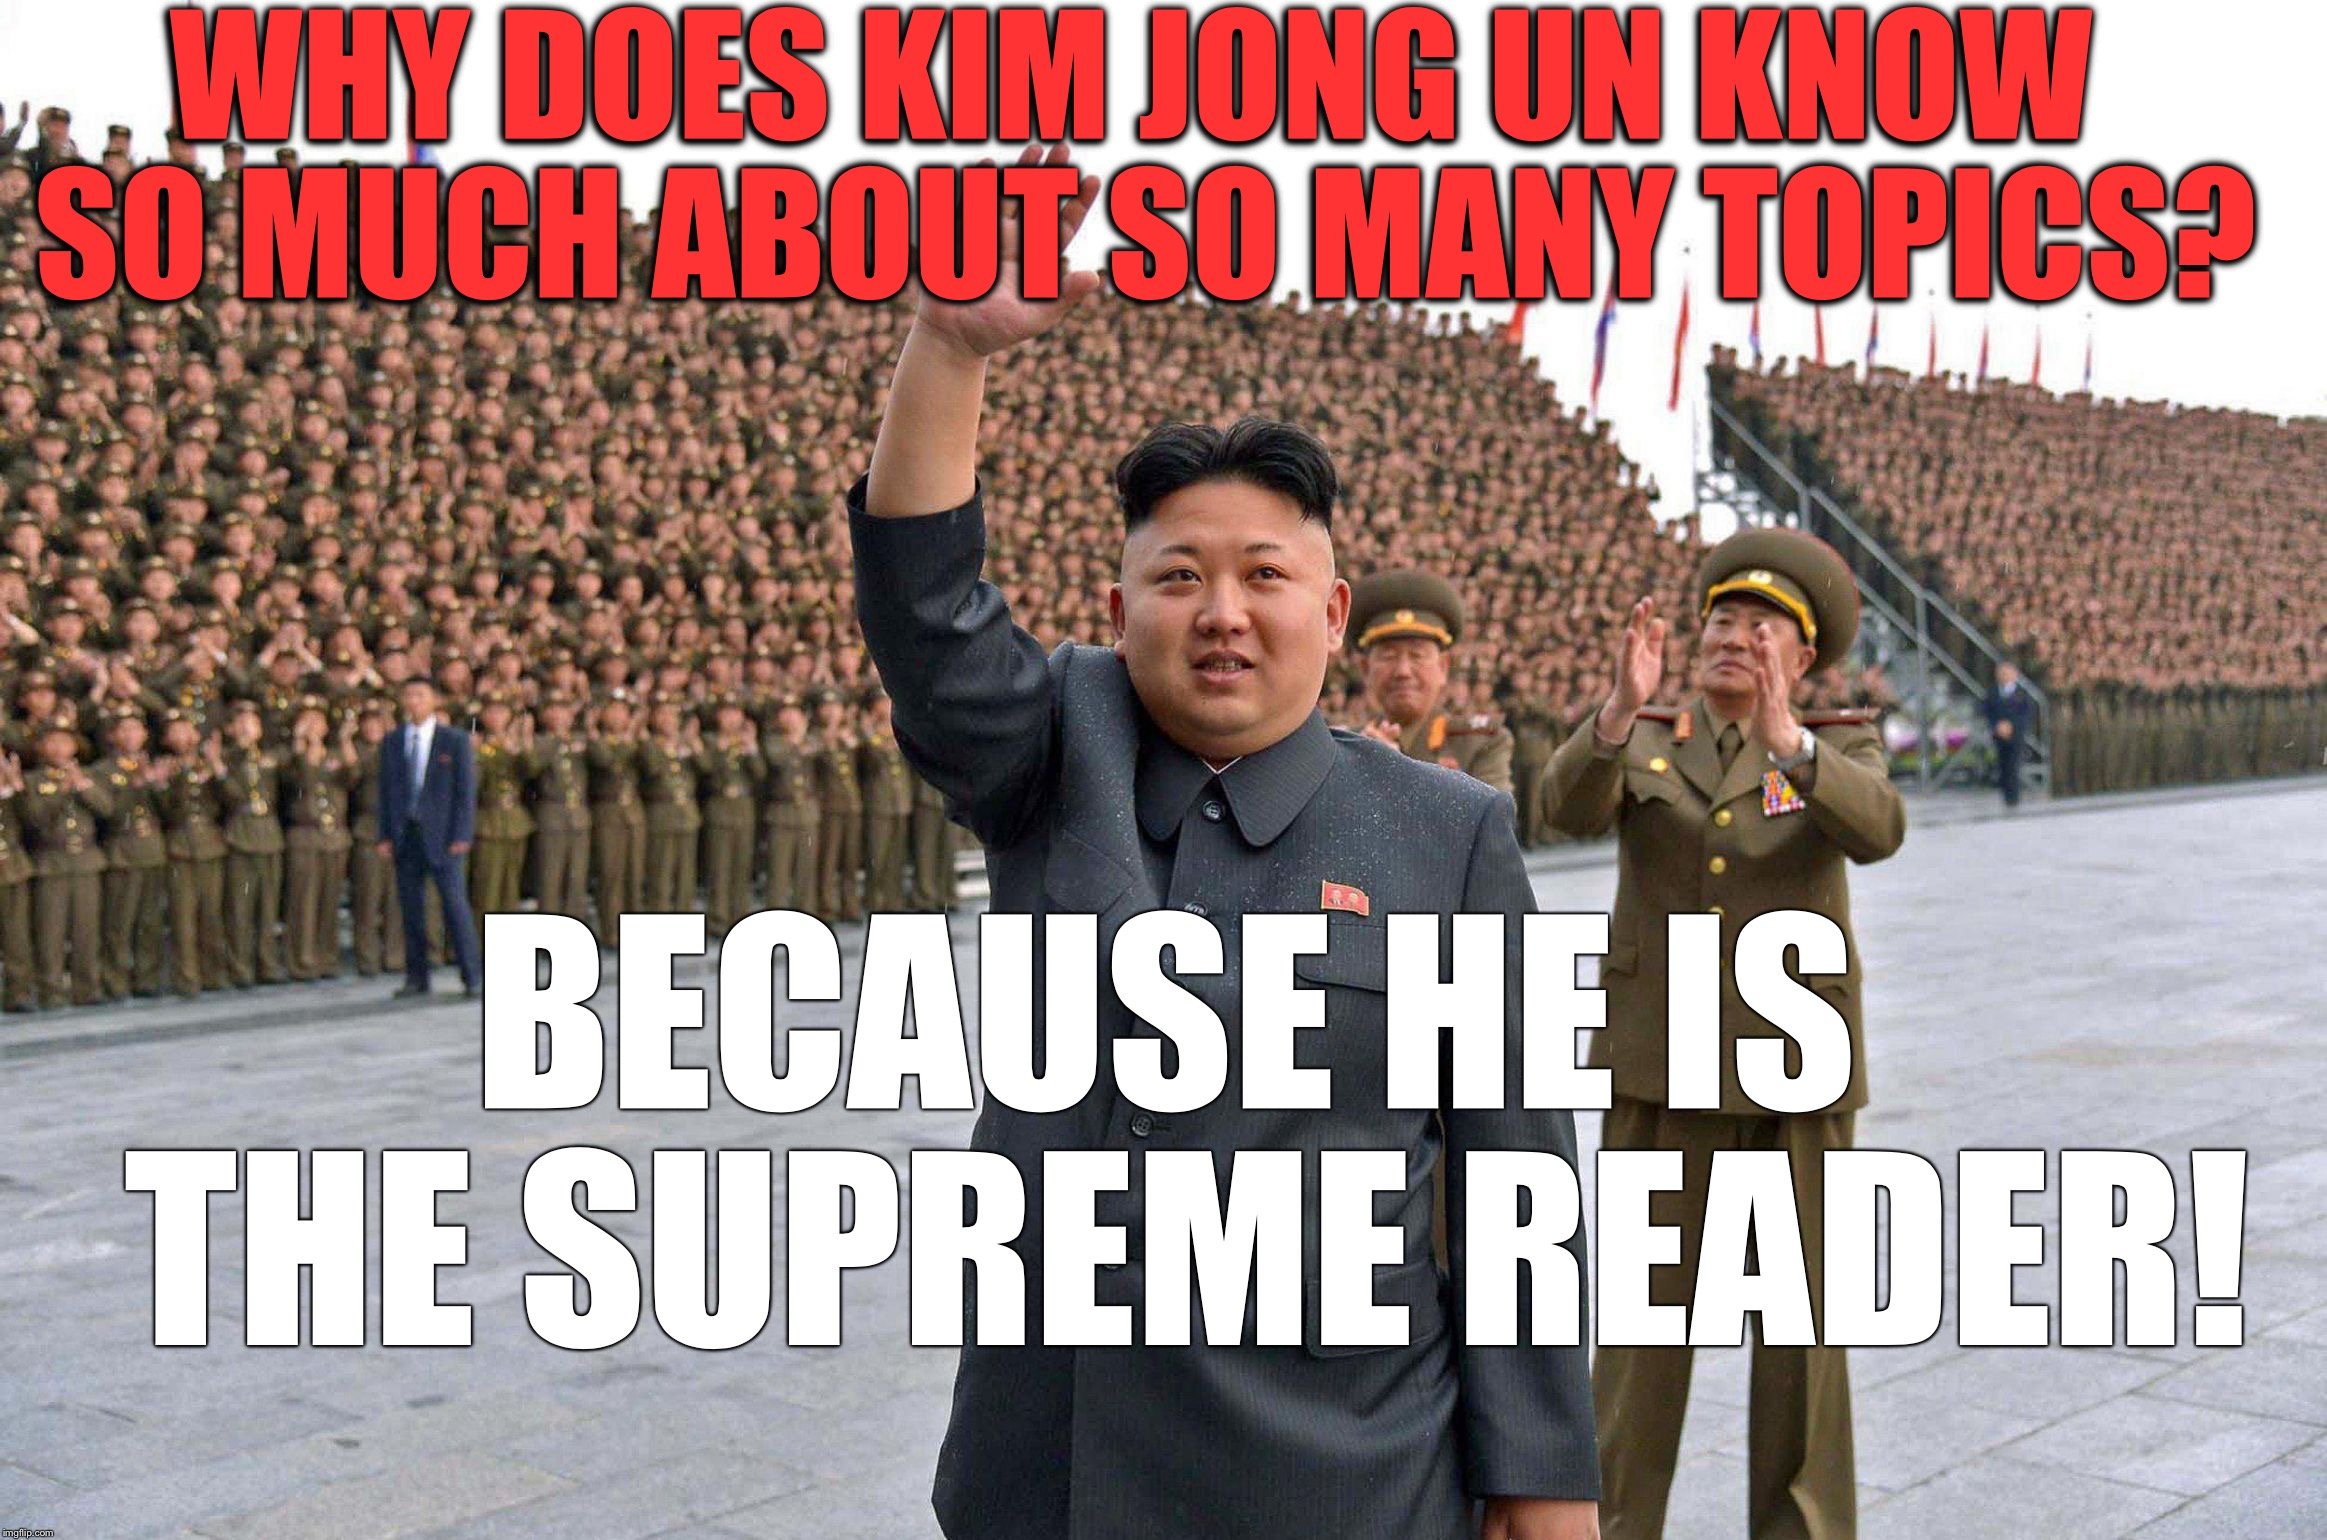 Kim Hong Un -The Supreme Leader | WHY DOES KIM JONG UN KNOW SO MUCH ABOUT SO MANY TOPICS? BECAUSE HE IS THE SUPREME READER! | image tagged in kim jong un,supreme leader | made w/ Imgflip meme maker